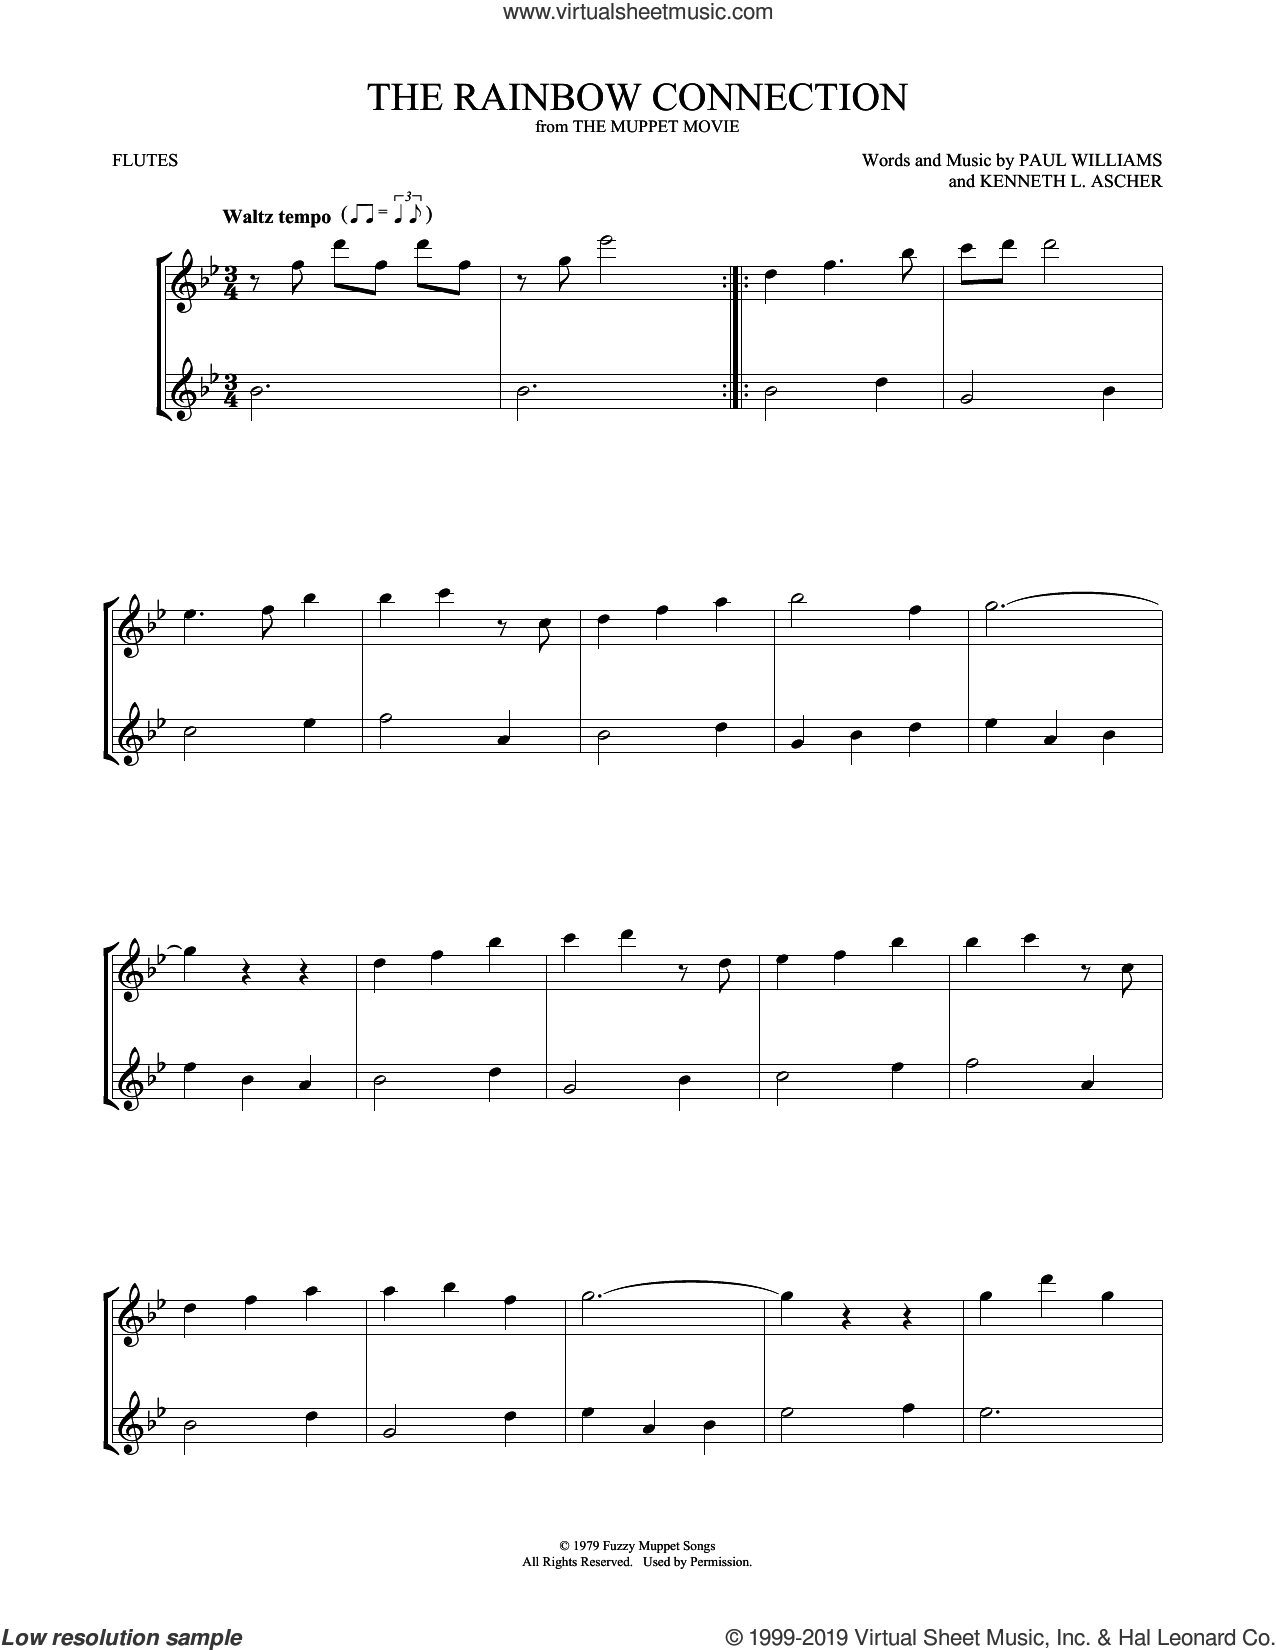 The Rainbow Connection sheet music for two flutes (duets) by Paul Williams and Kenneth L. Ascher, intermediate skill level